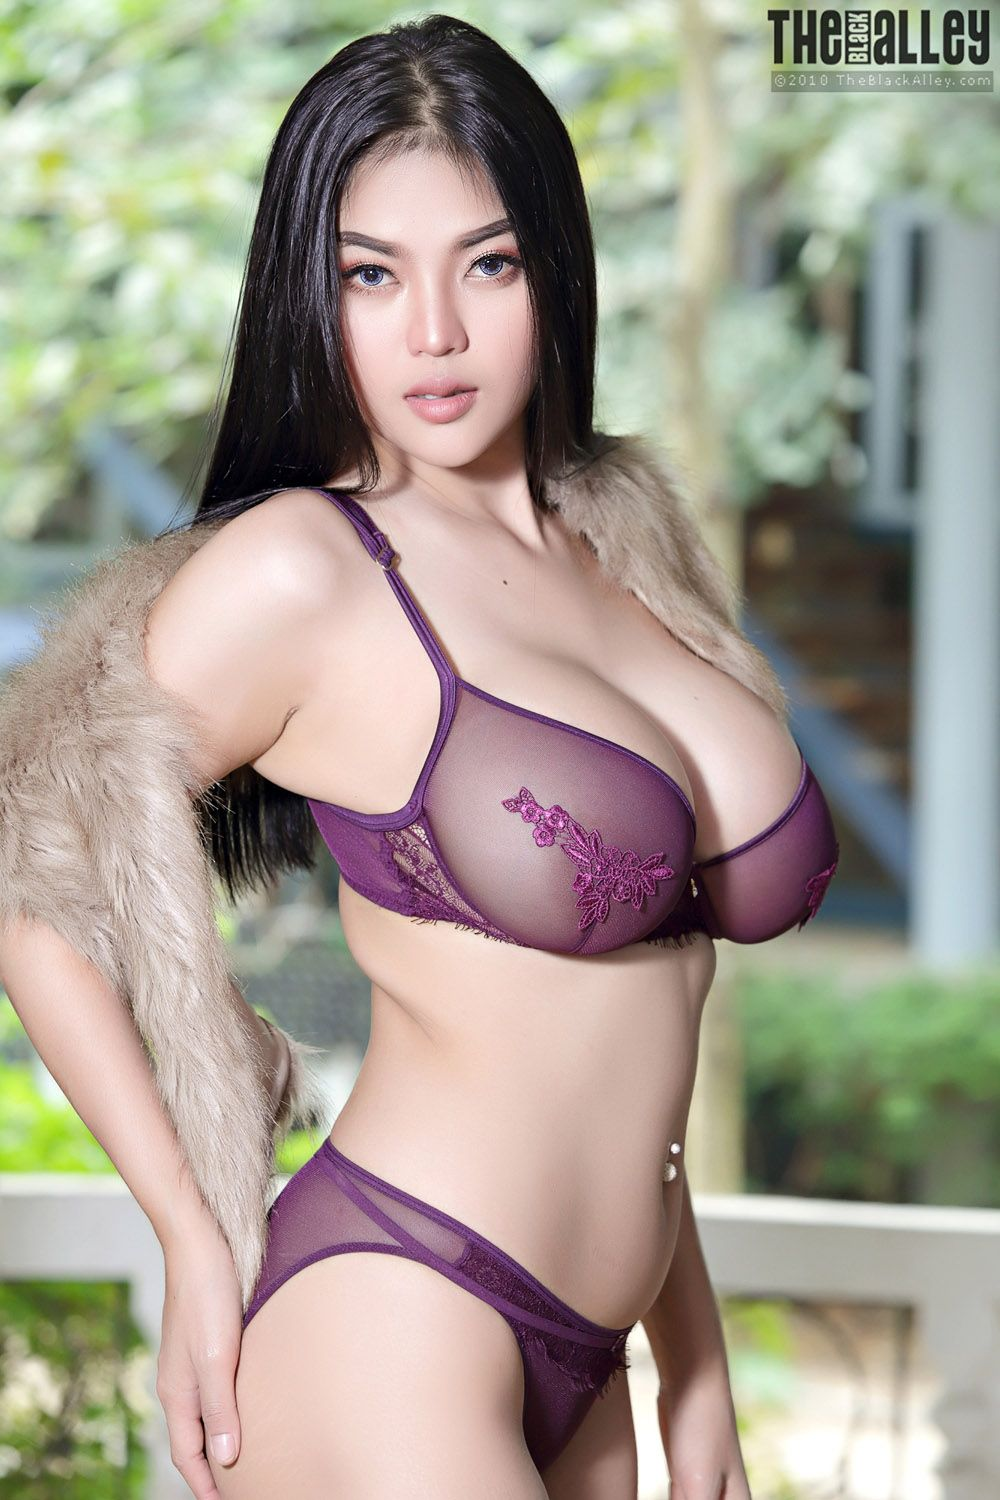 Busty asian toy photos 425